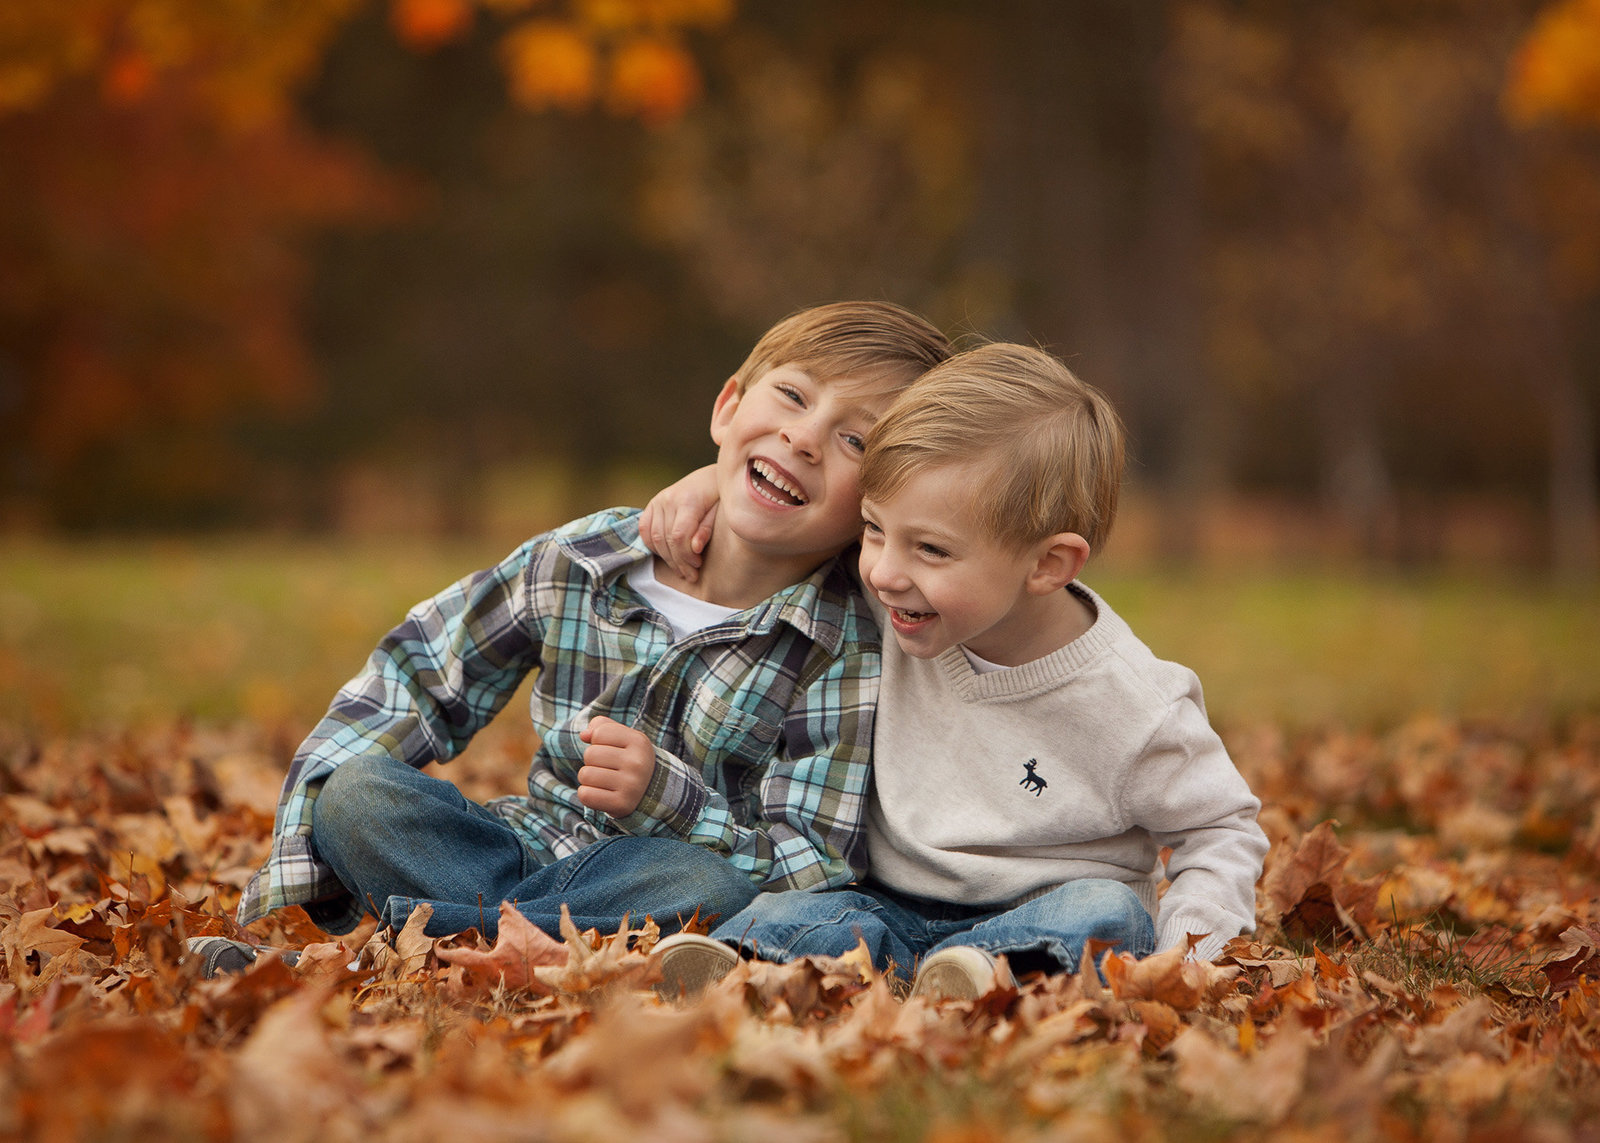 Children's photography child photographer, family portraits outdoors in the Hudson Valley NY